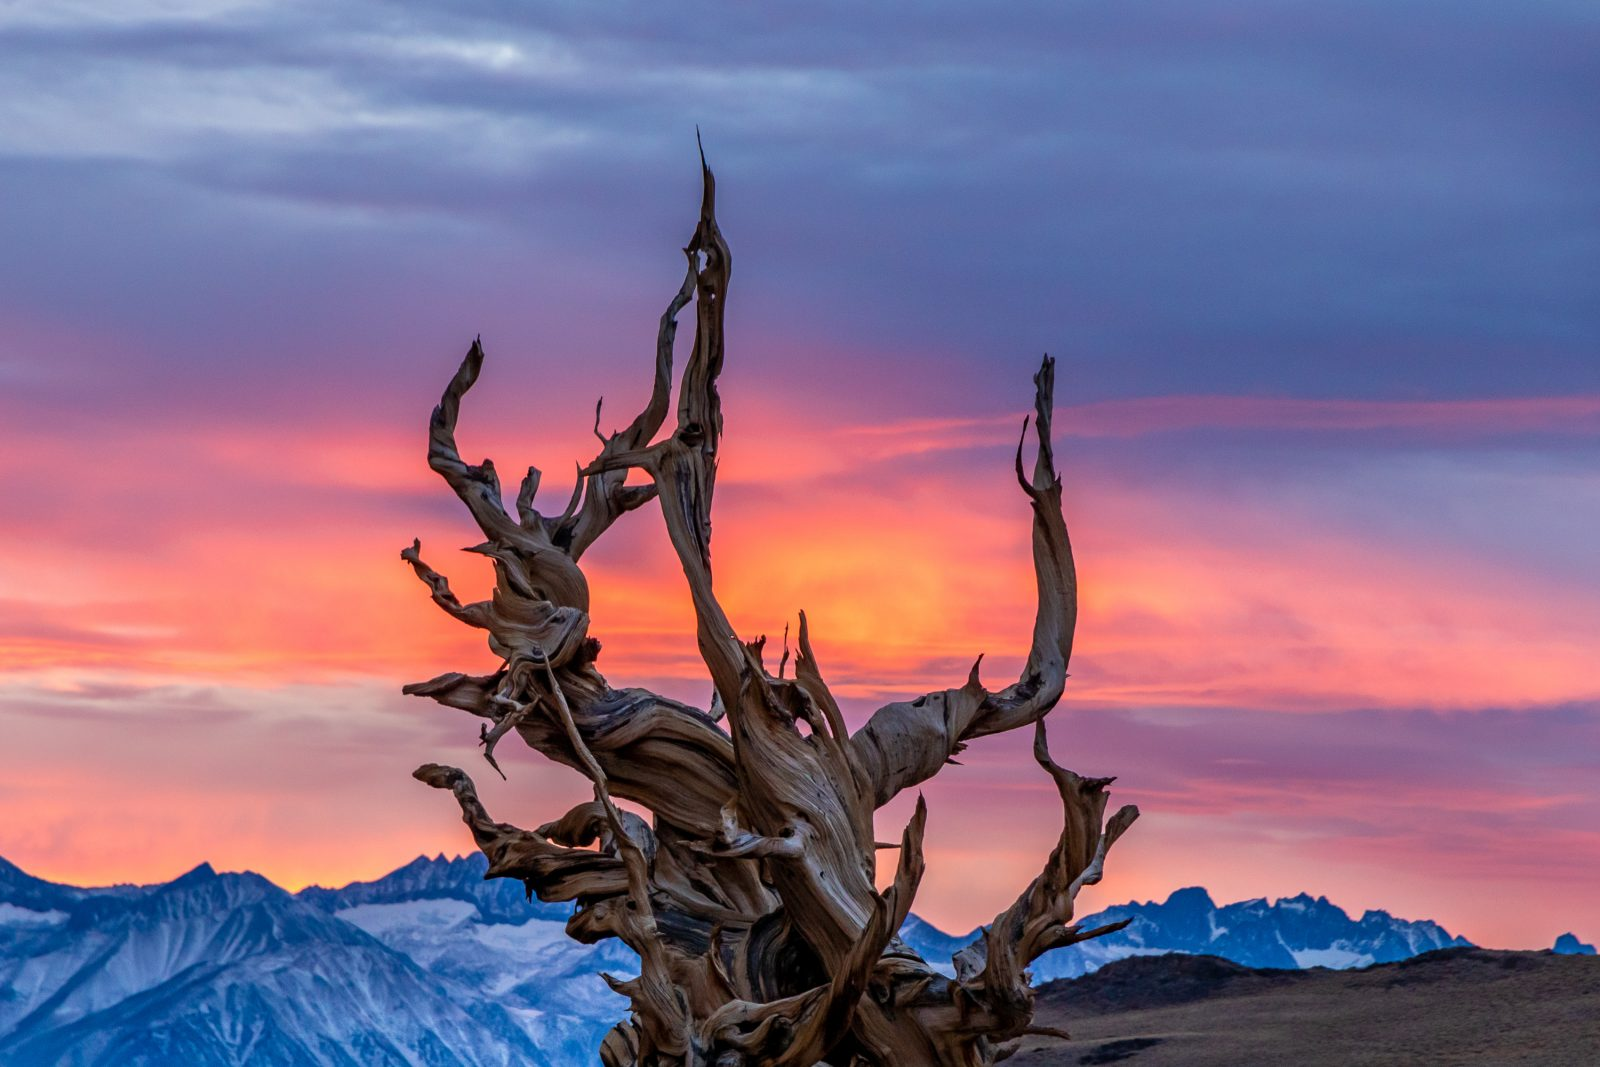 Sunset from The Bristlecone Pine Forest